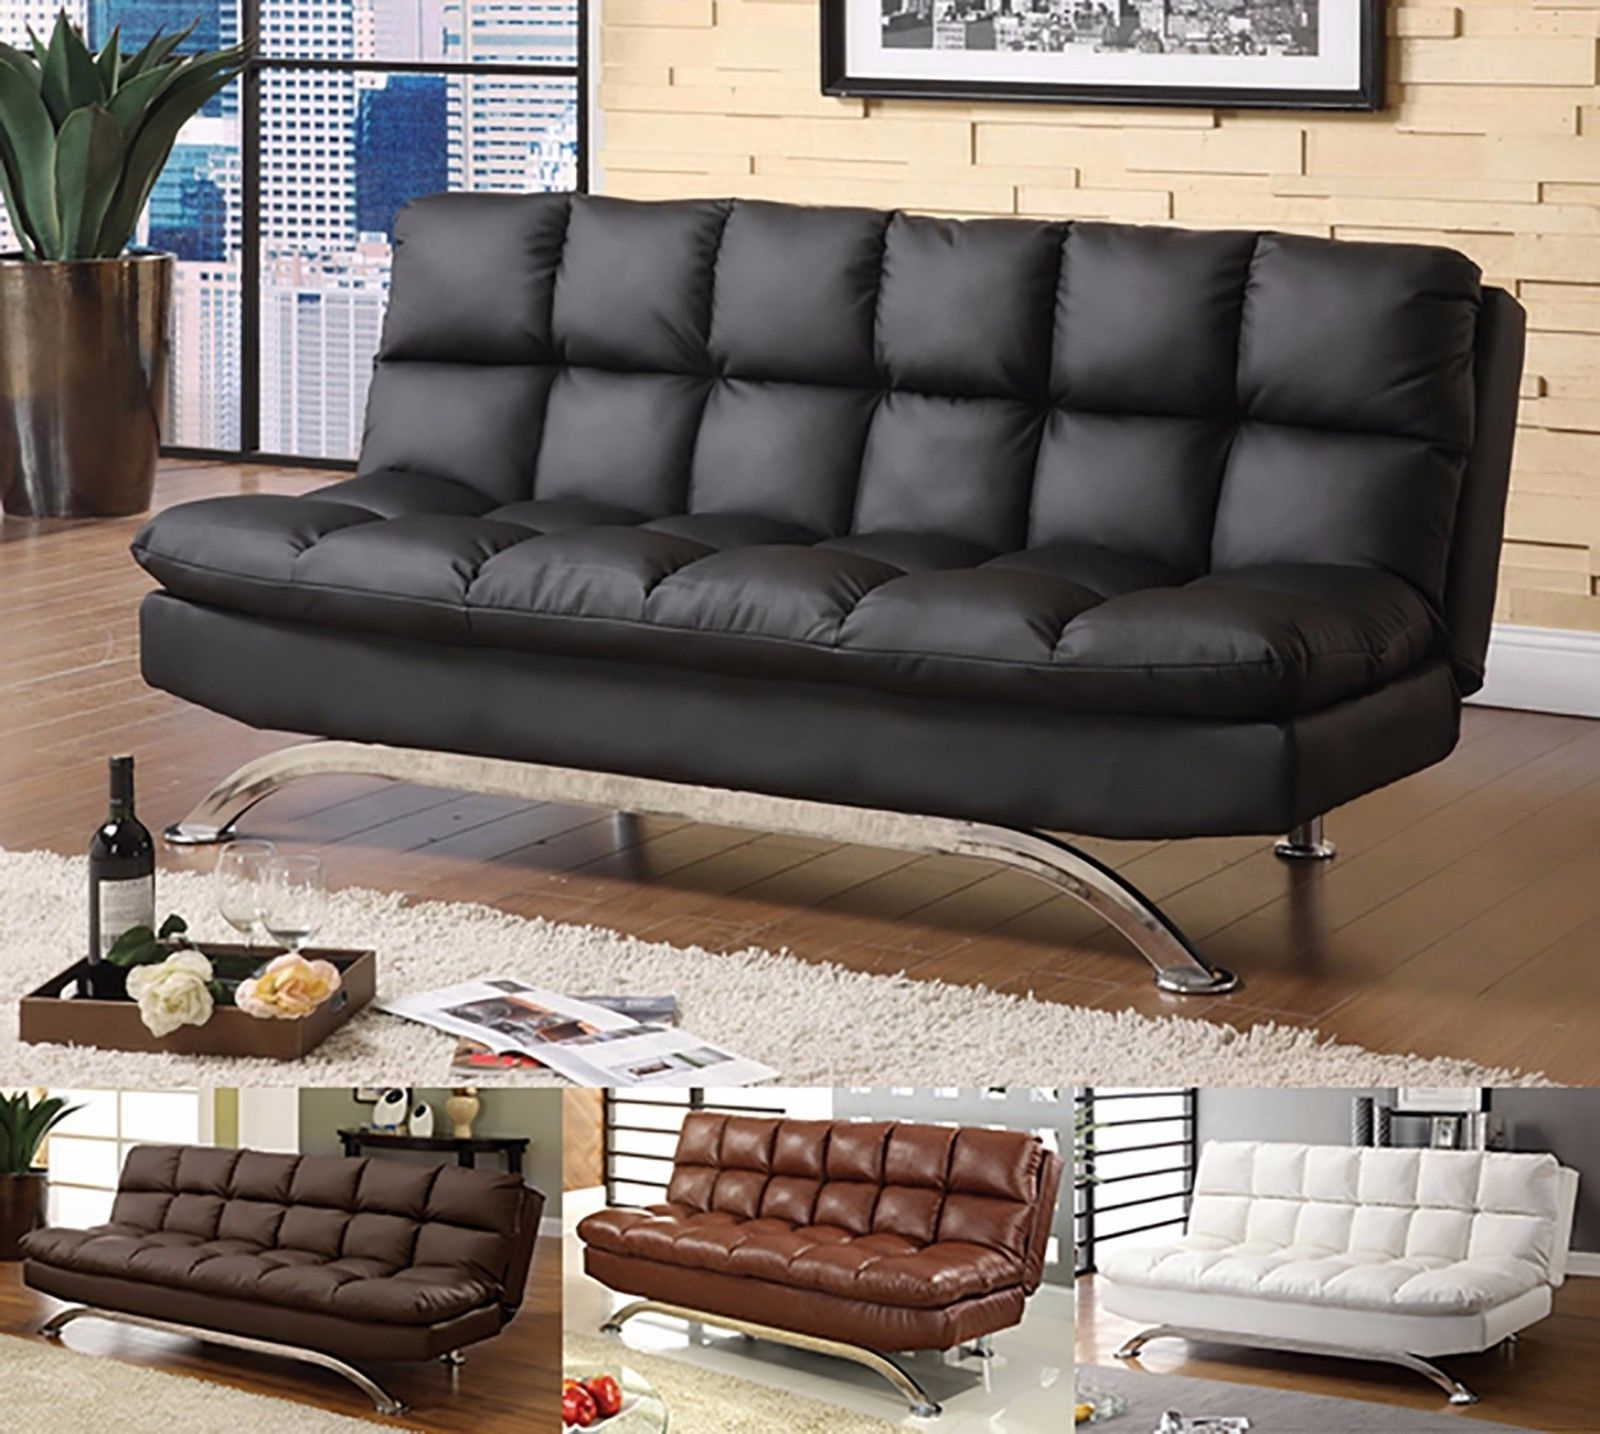 Furniture : Mattress Firm University Fold Out Couch Sleeper Pertaining To Most Current Tuscaloosa Sectional Sofas (View 4 of 20)